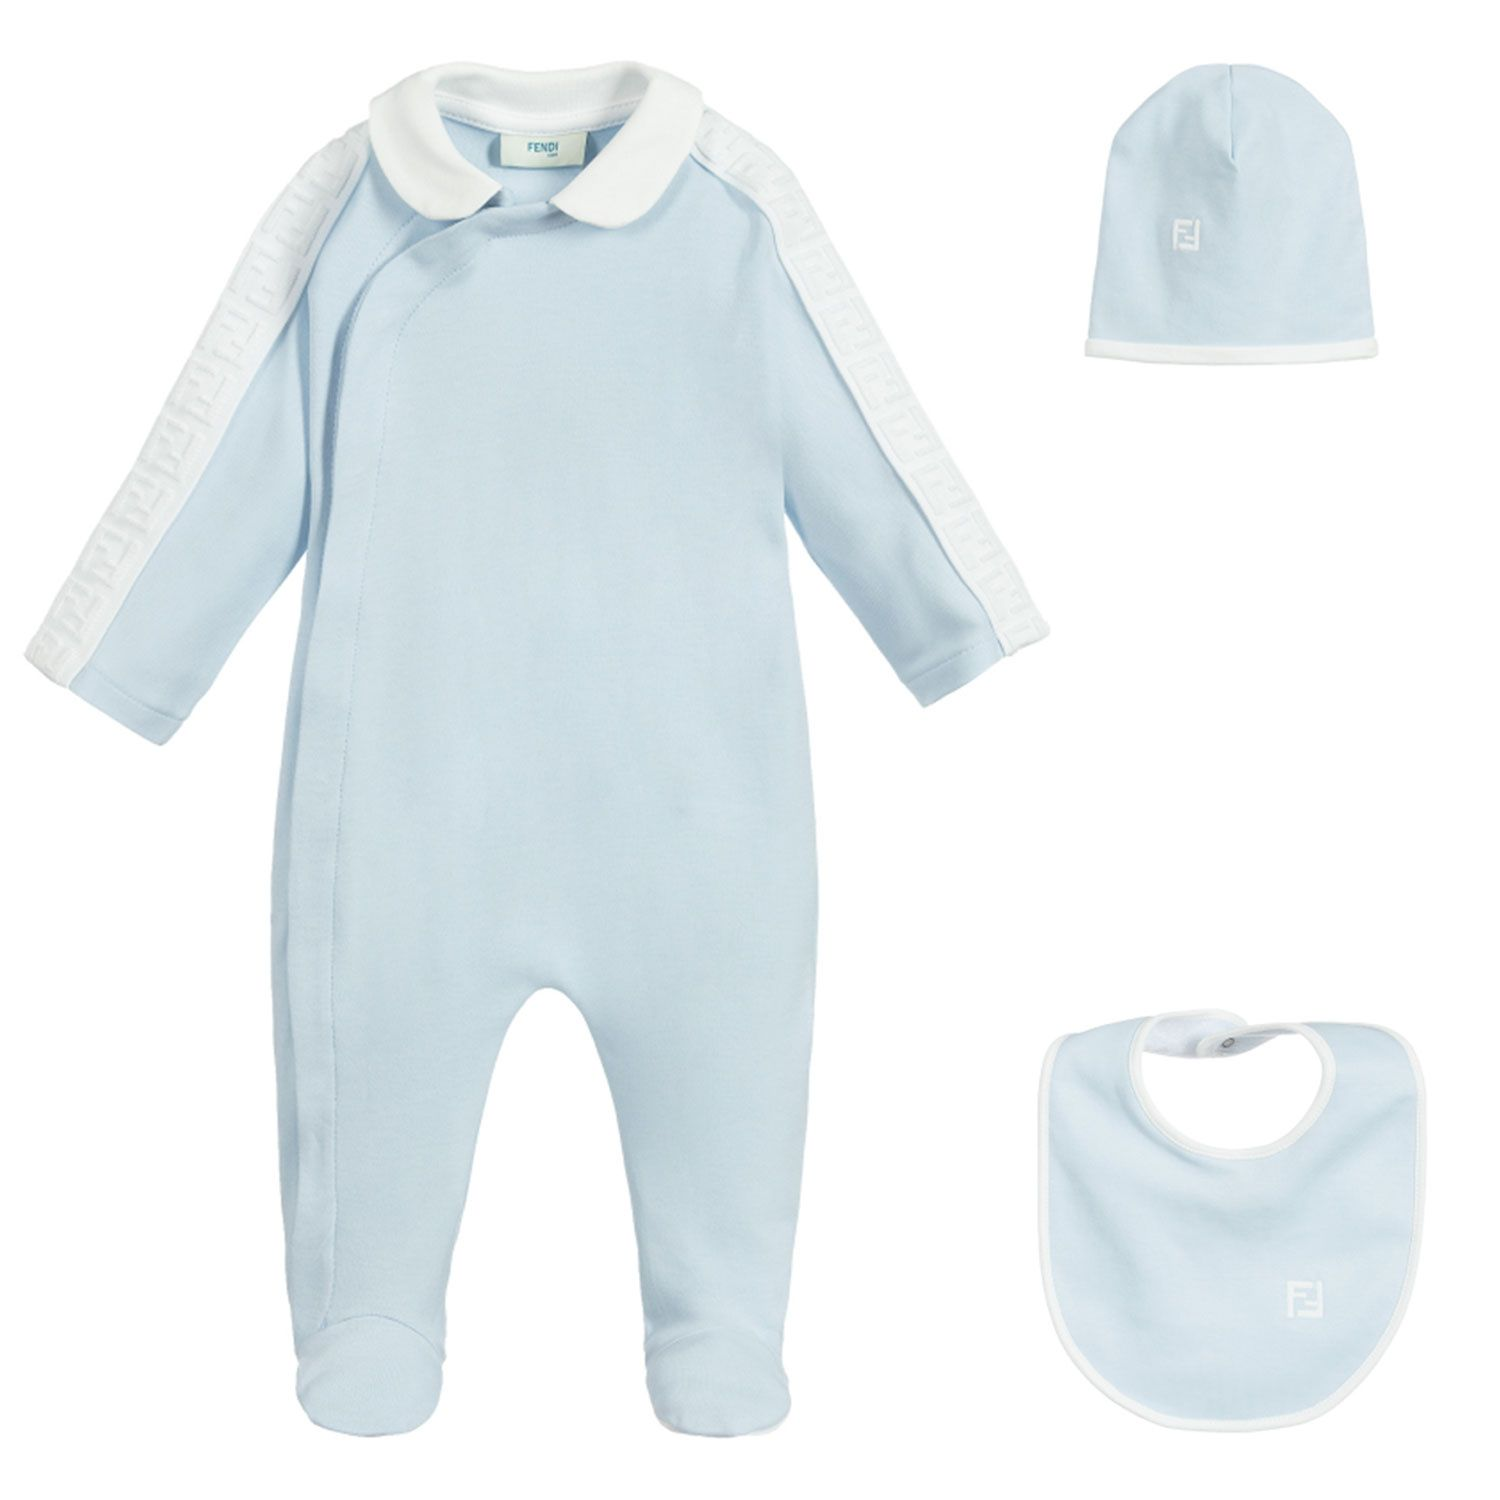 Picture of Fendi BUK062 baby playsuit light blue